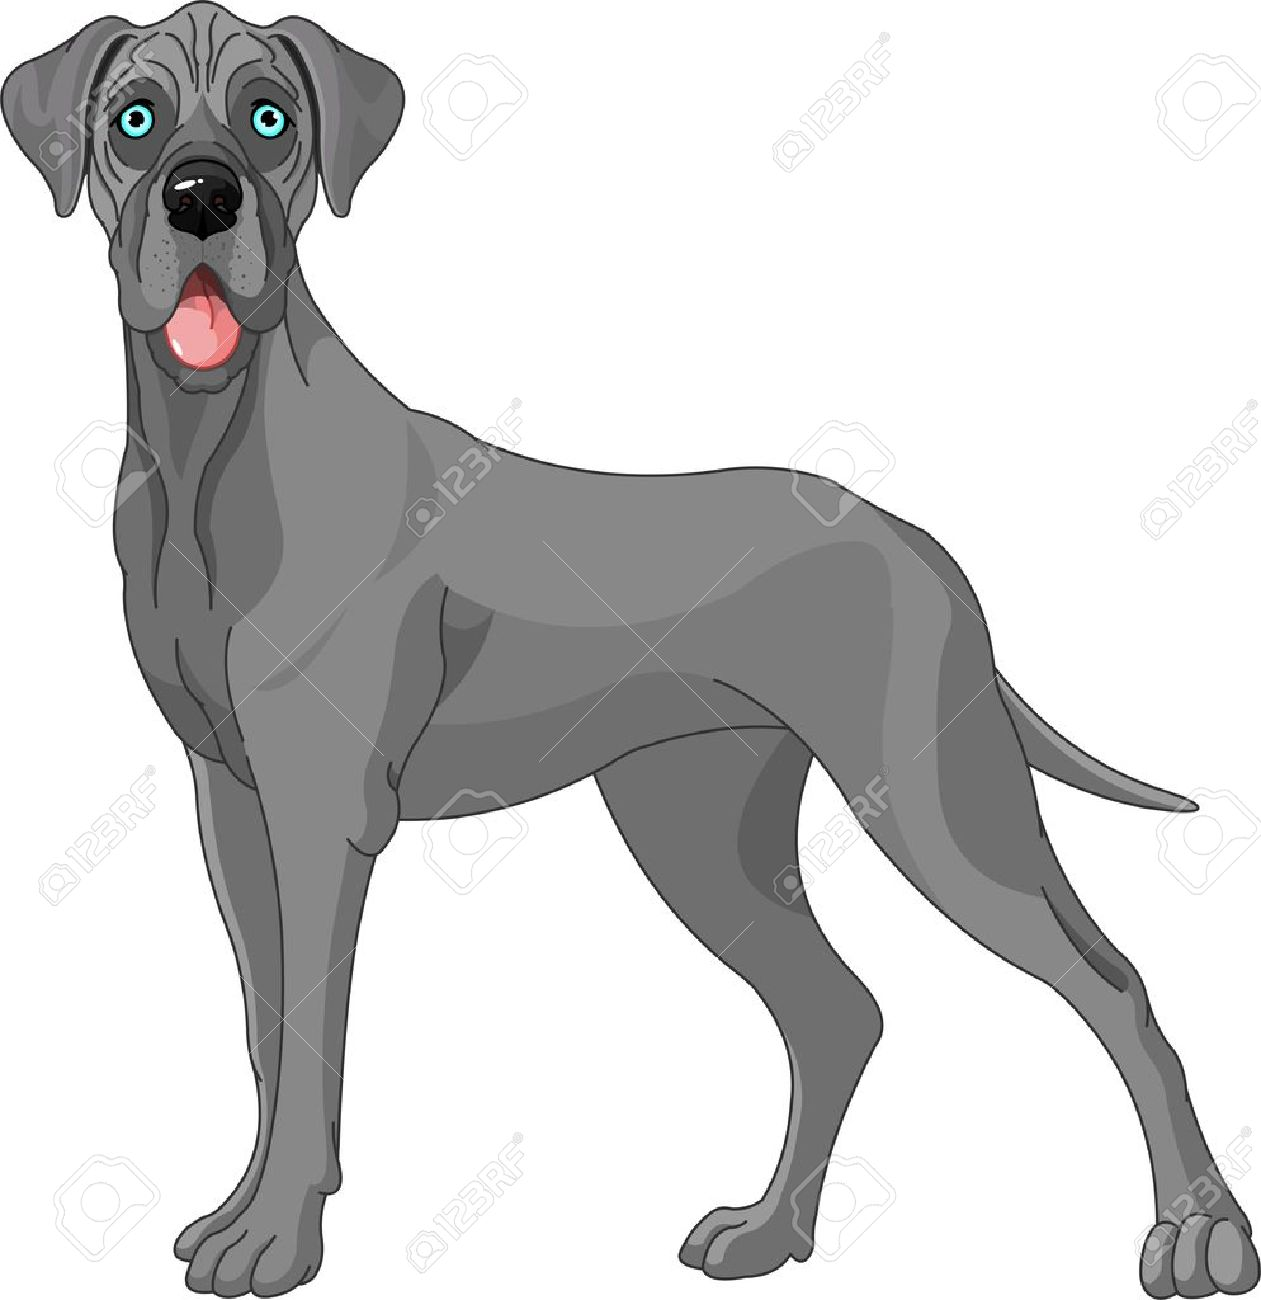 Great Dane clipart #10, Download drawings